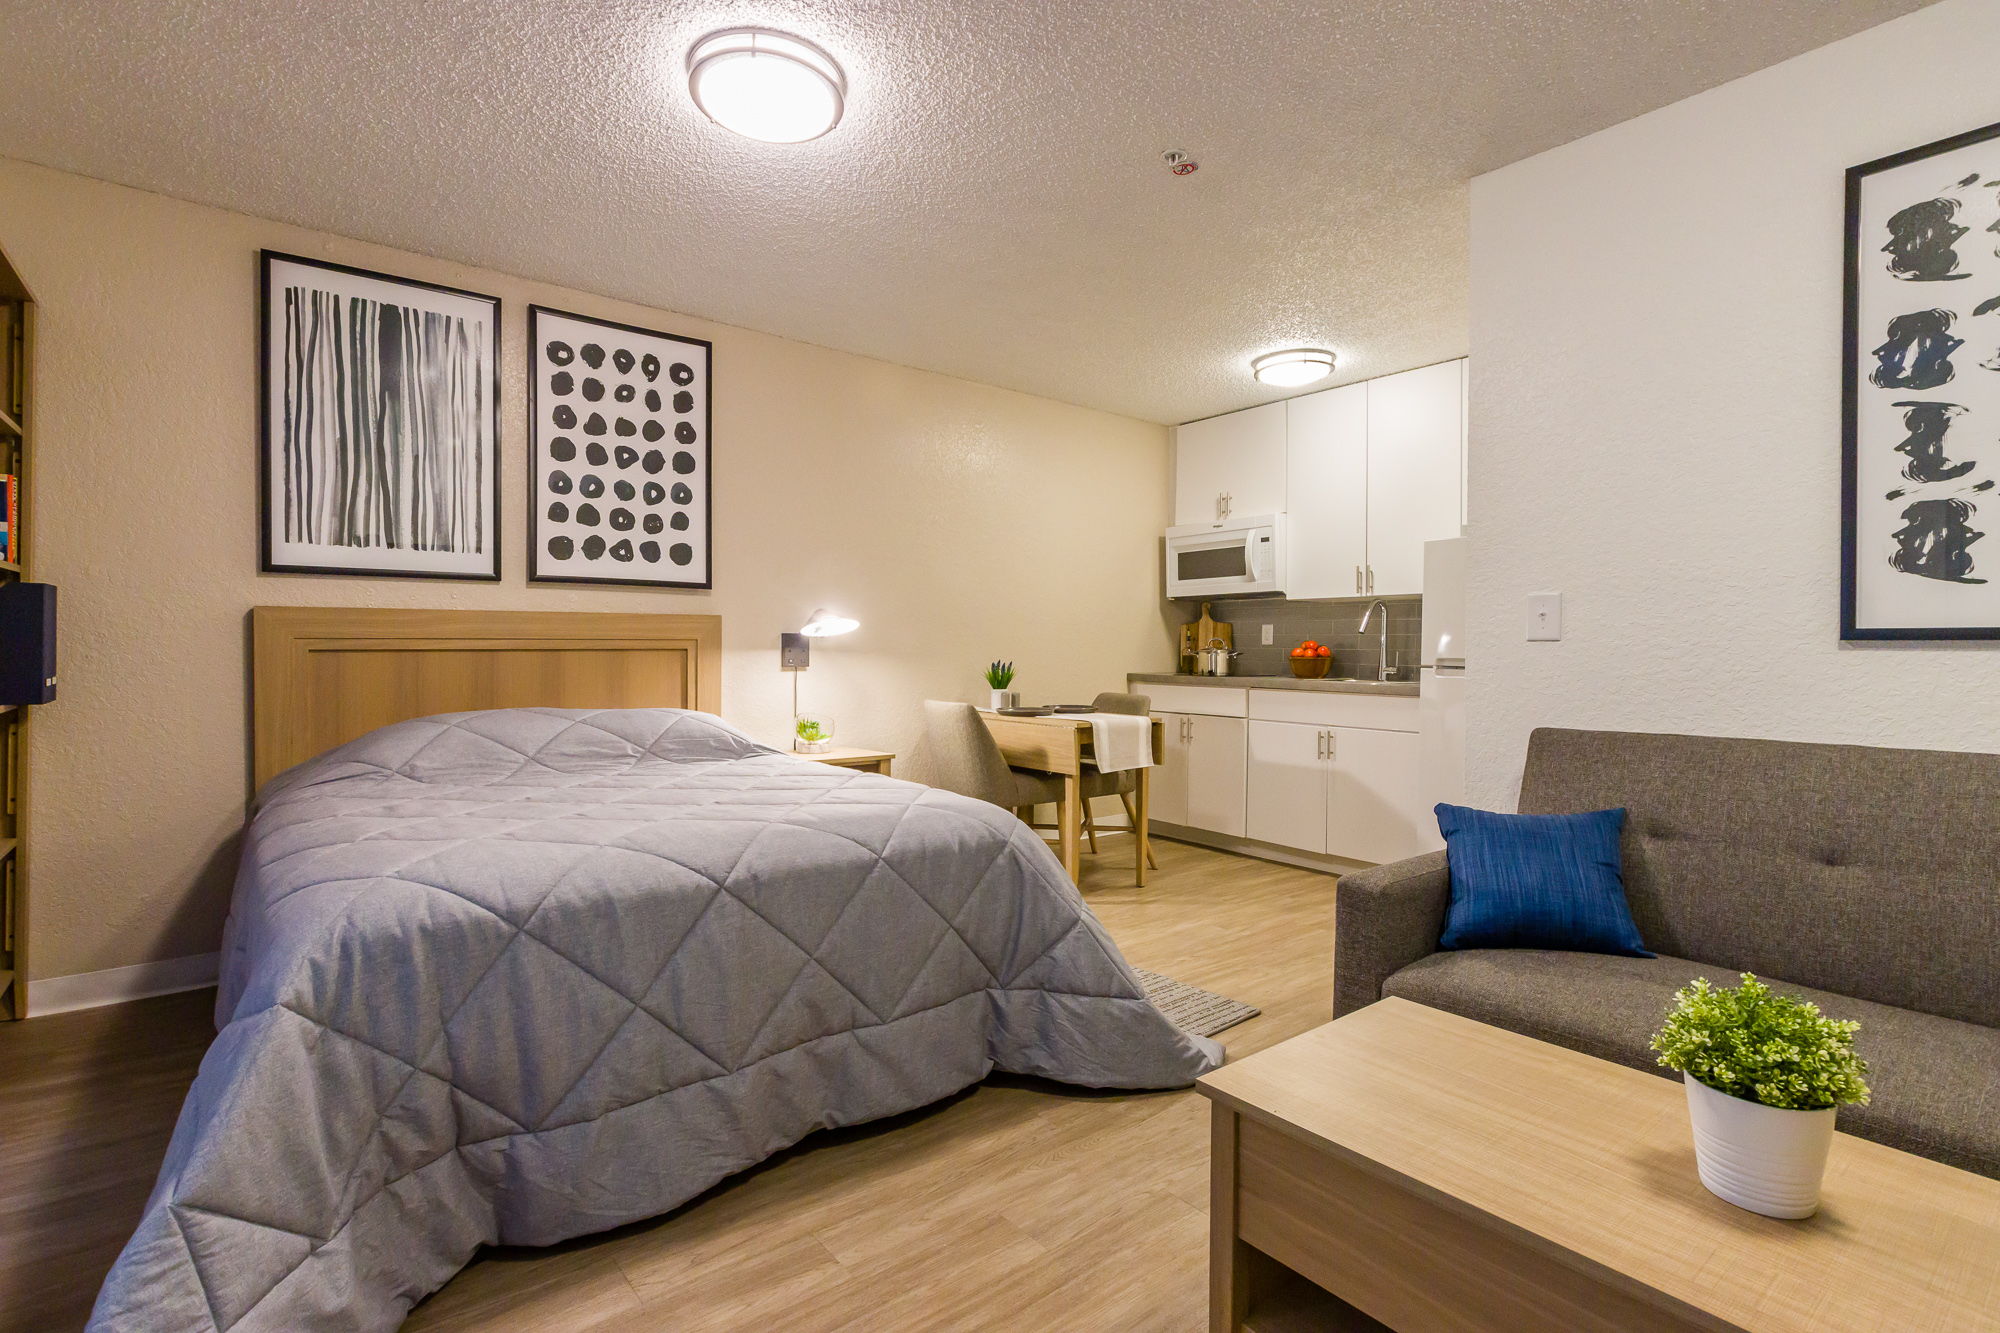 InTown Suites Extended Stay San Antonio TX - Leon Valley South